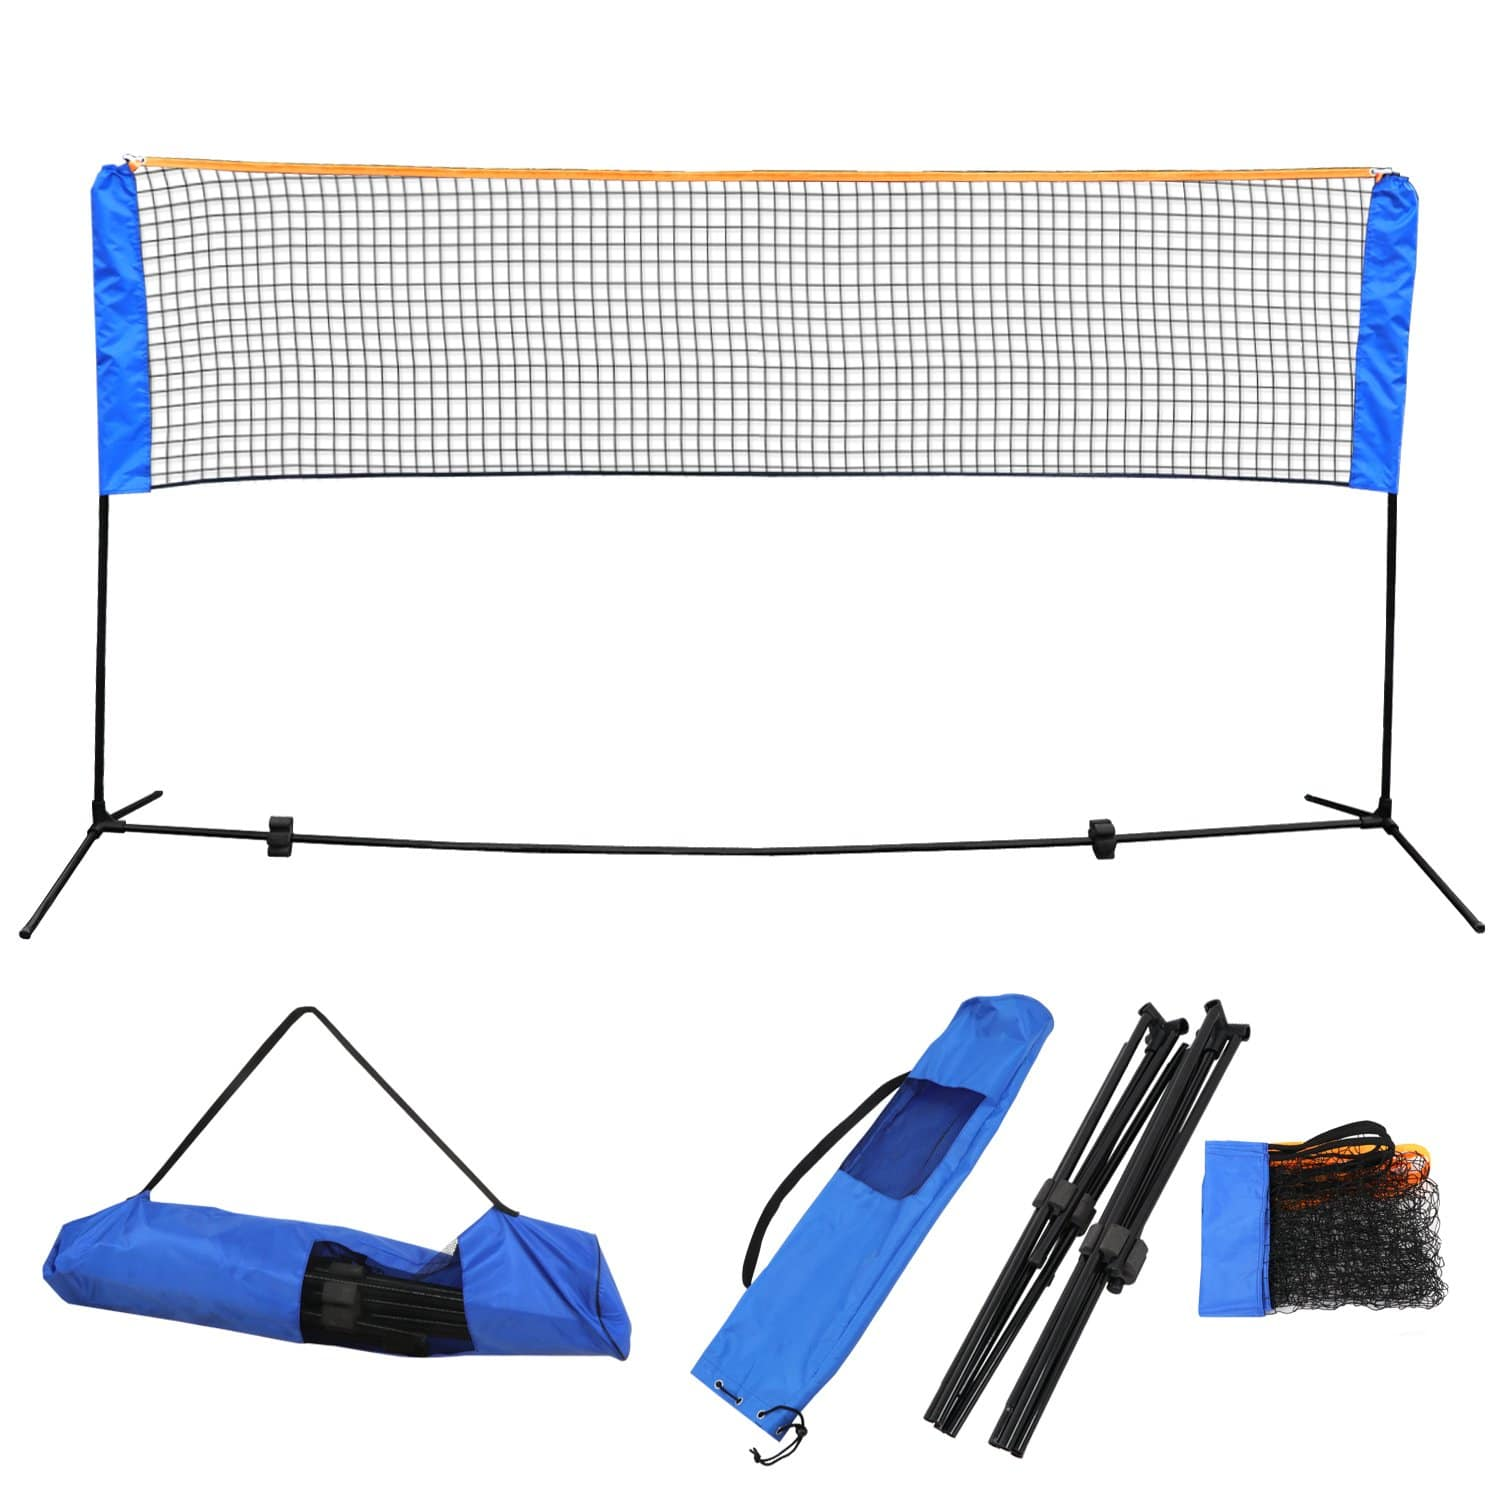 ZENY 10 Ft x 5 Ft High Portable Volleyball Net Set w/Poles